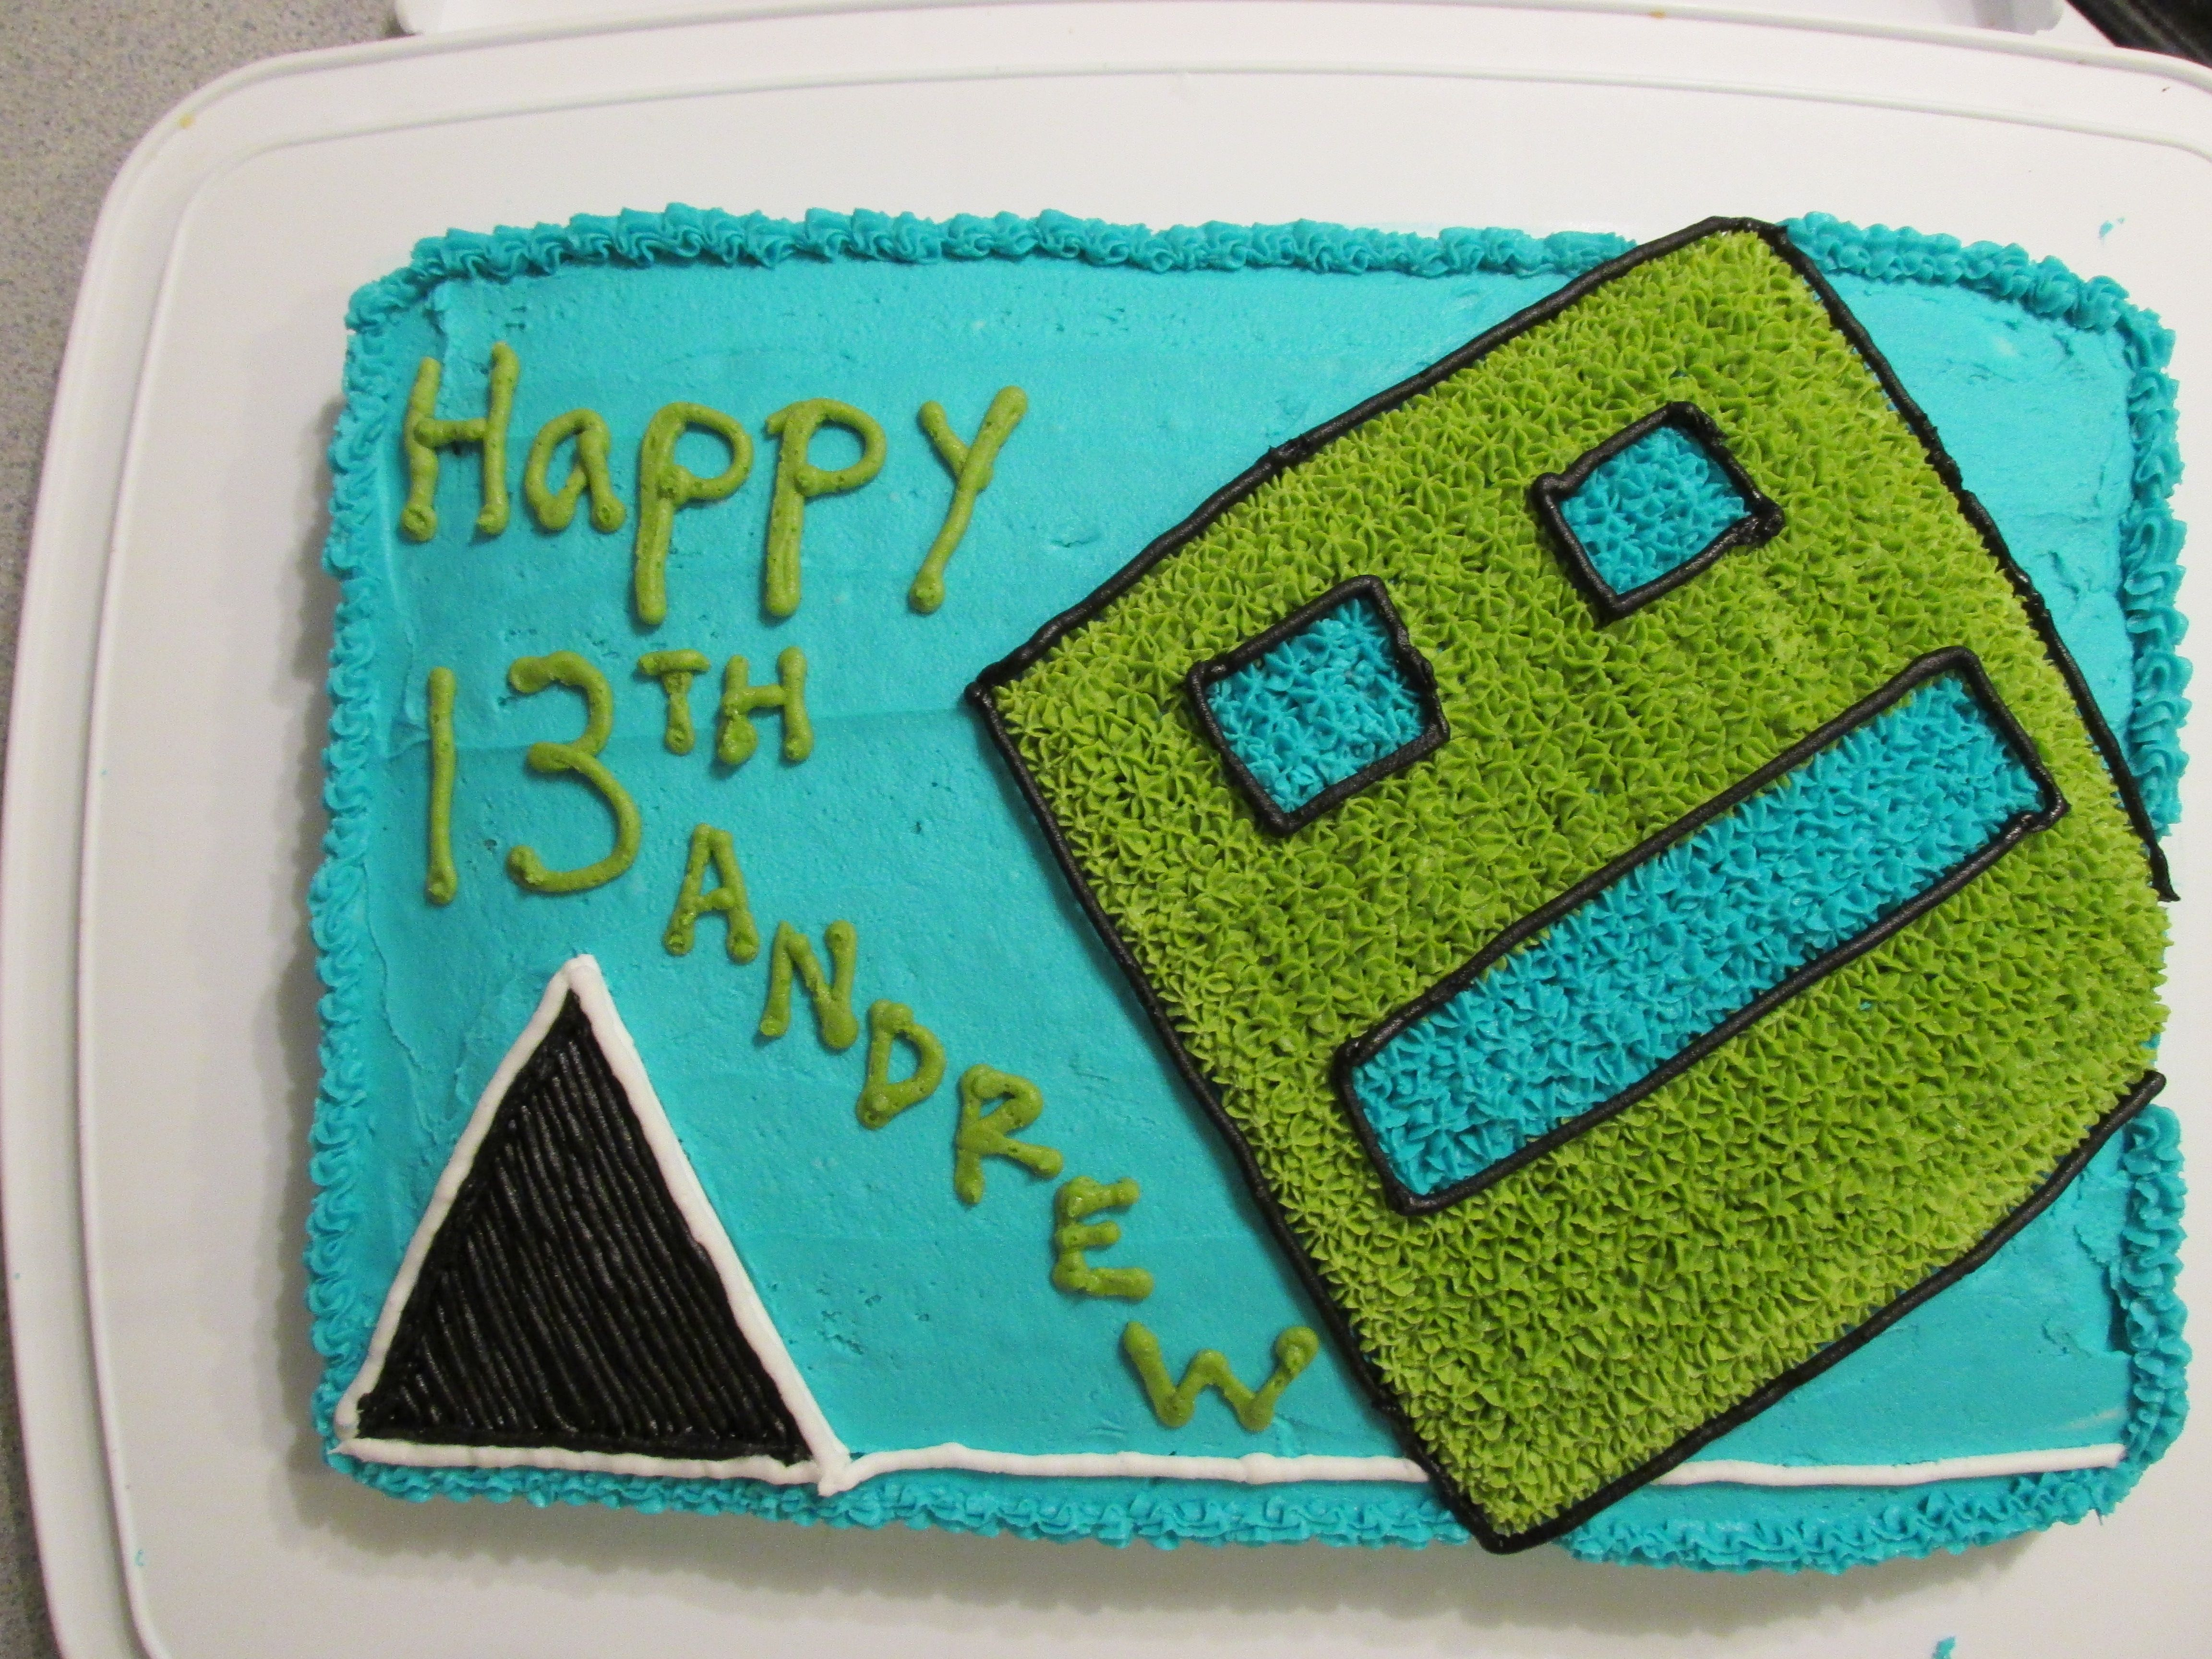 Geometry Dash cake - Andrew age 13